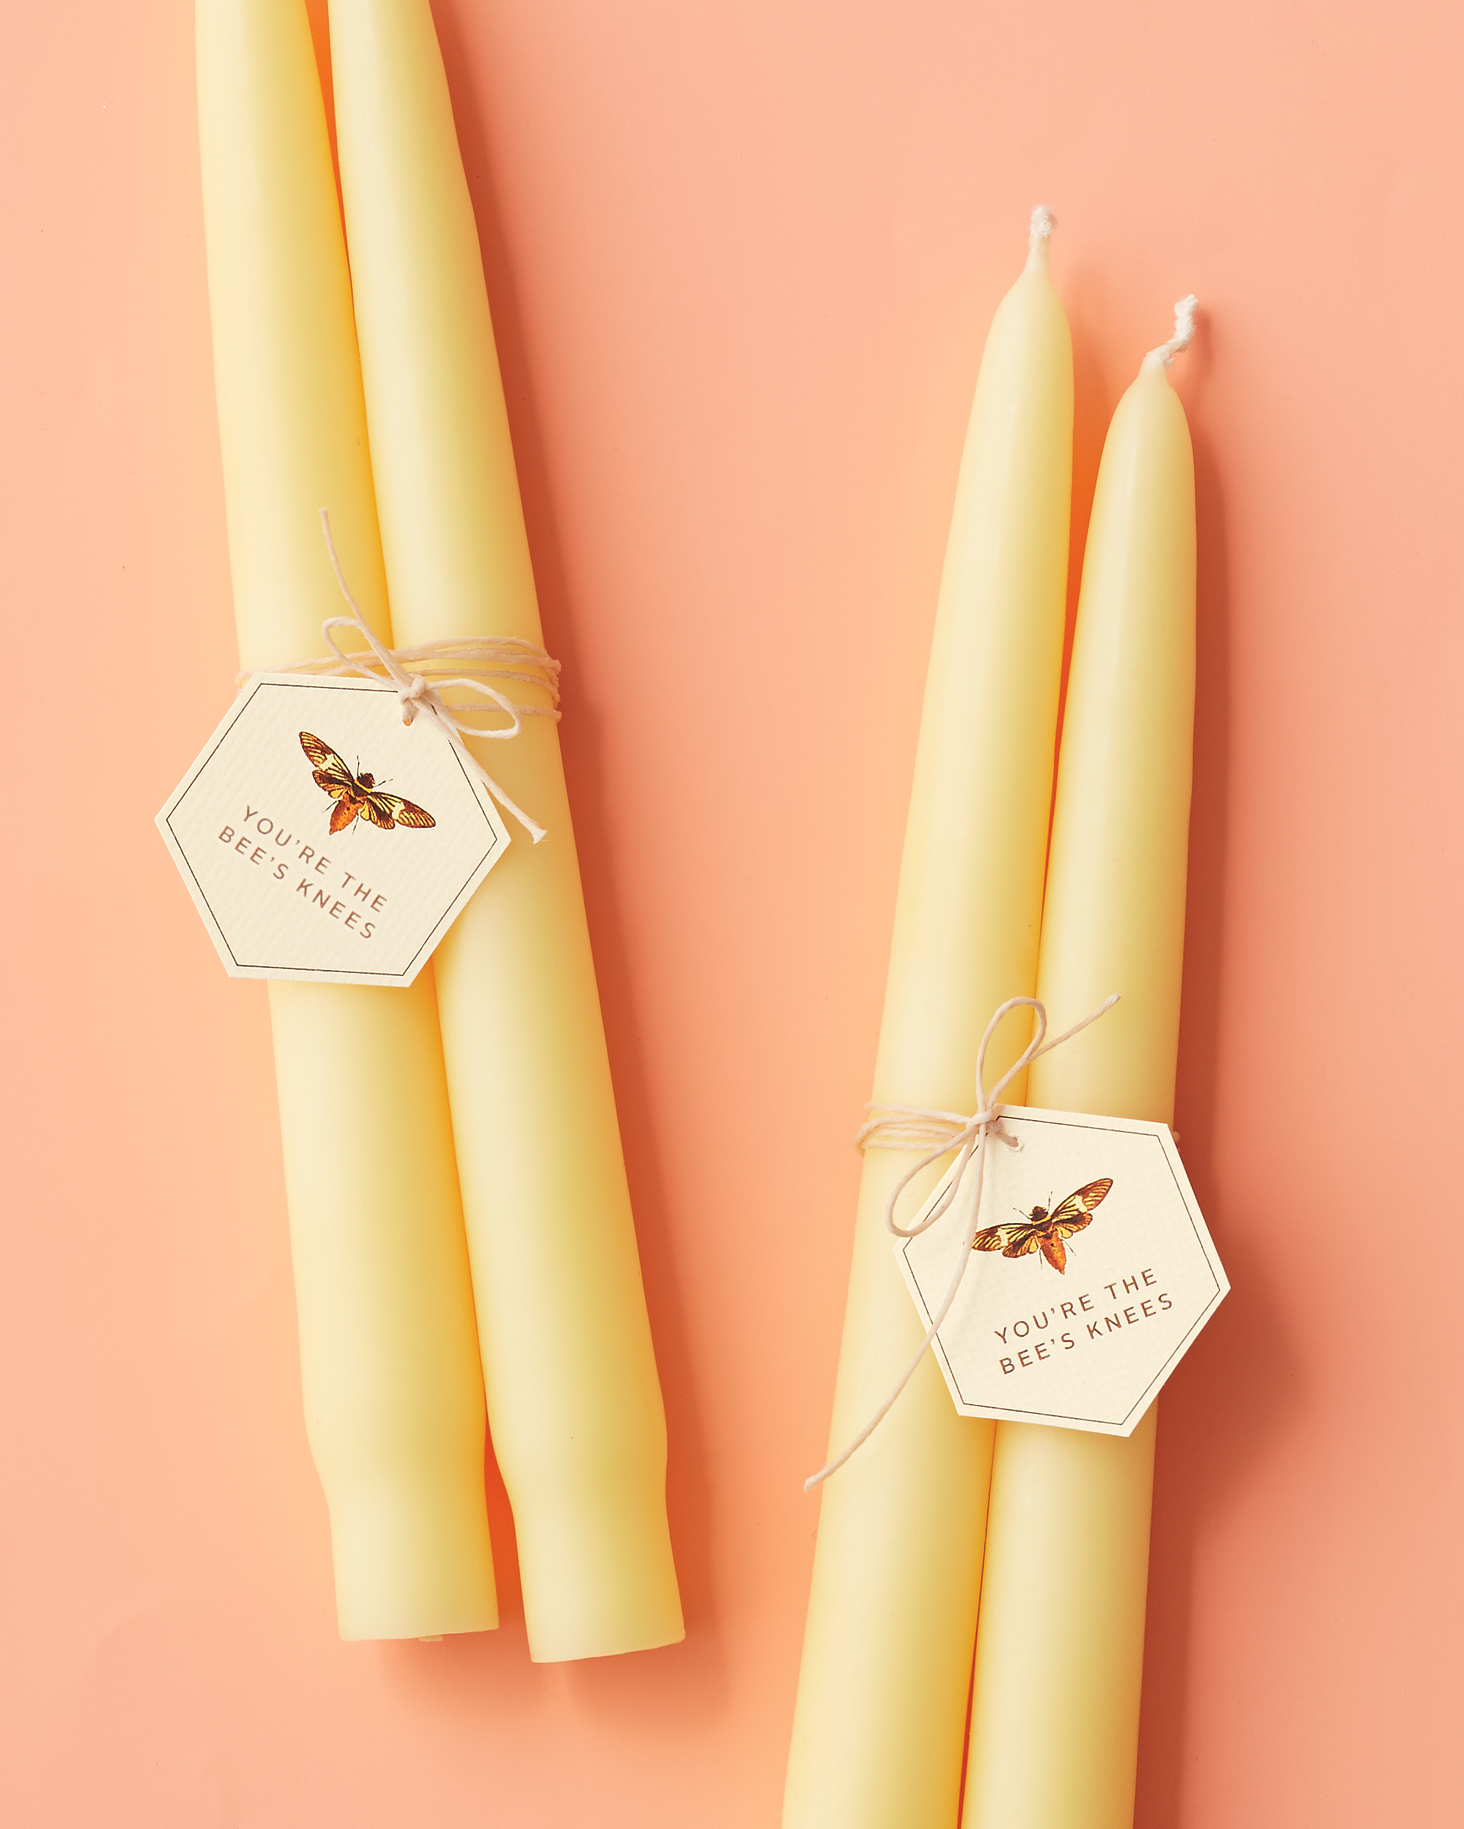 You're the Bee's Knees Candle Favor Tags